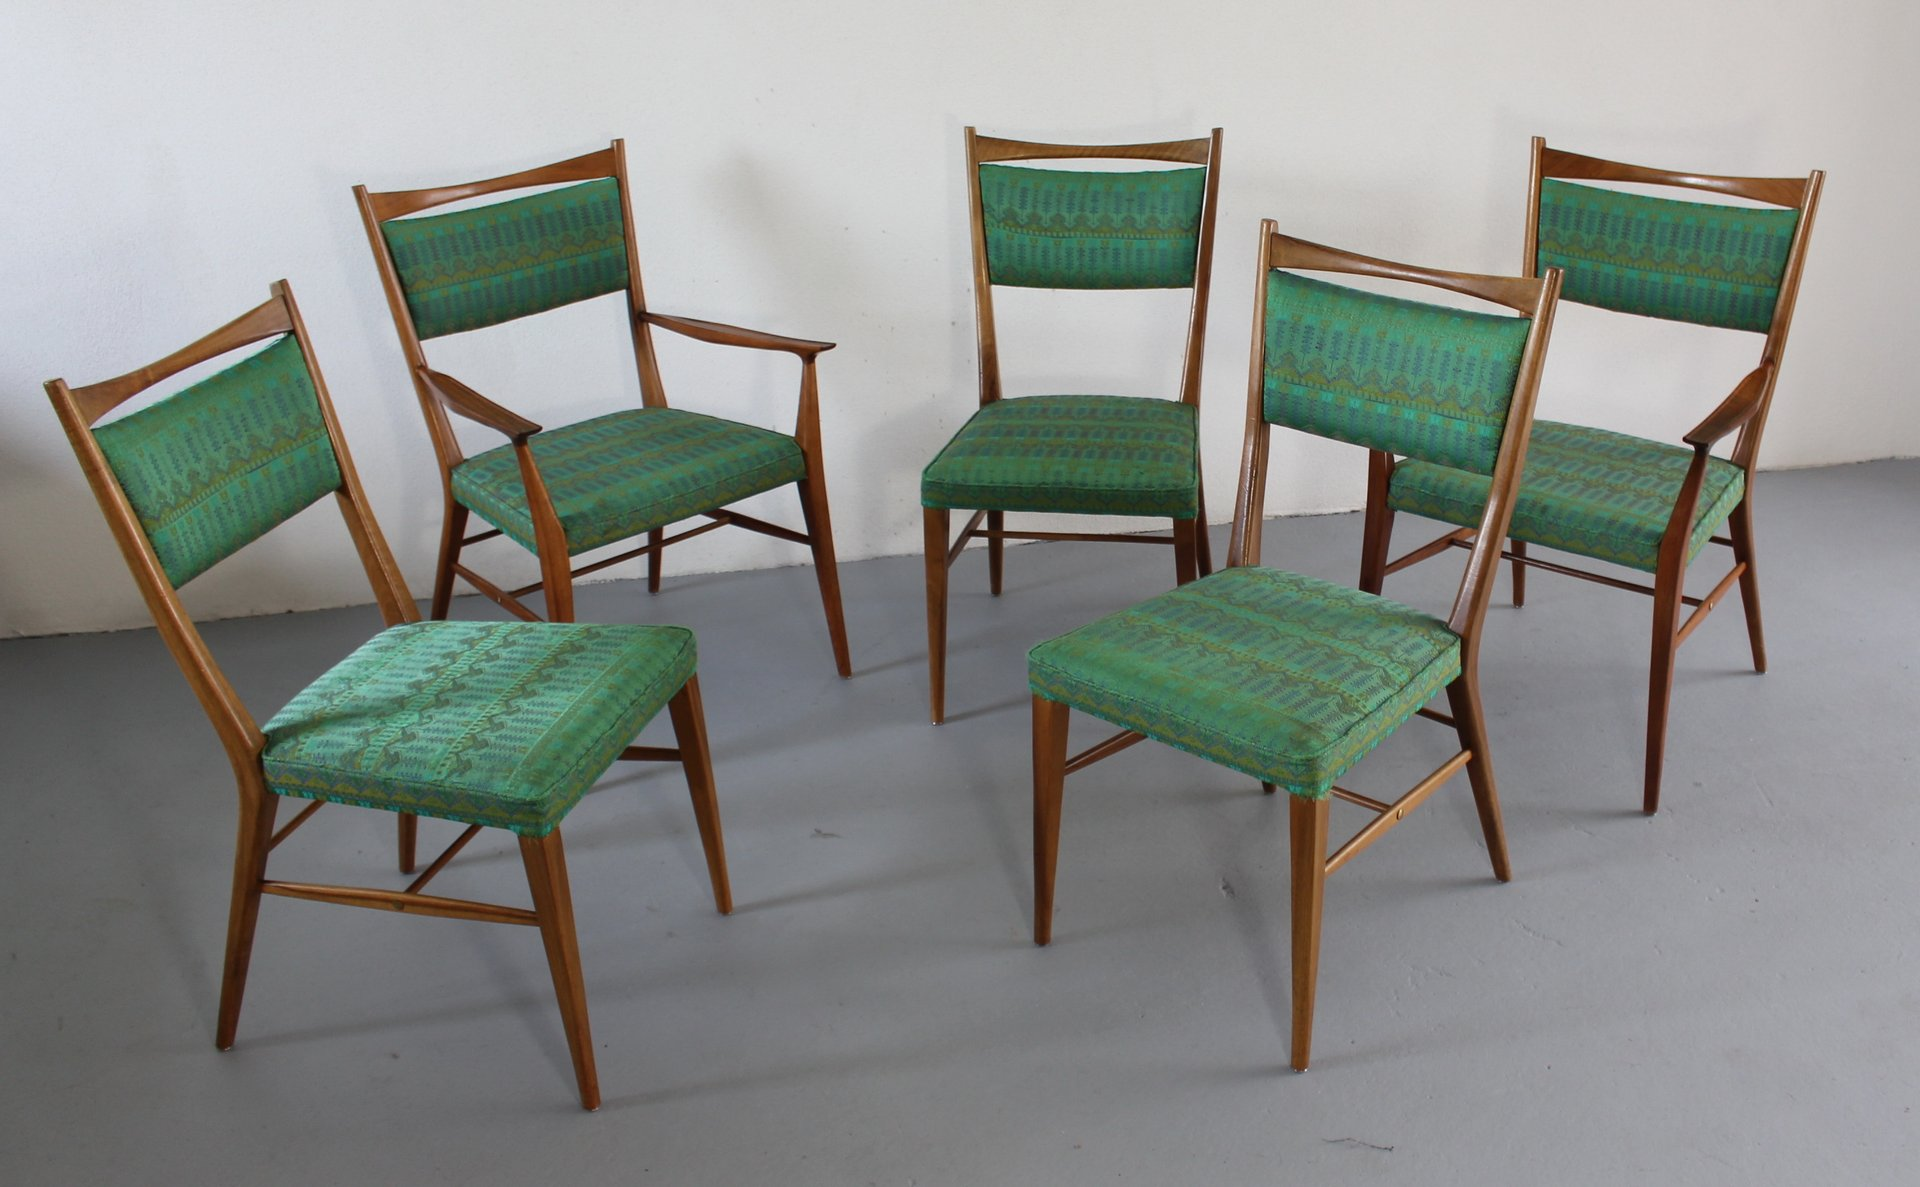 Paul Mccobb Chairs Dining Chairs In American Walnut By Paul Mccobb 1950s Set Of 5